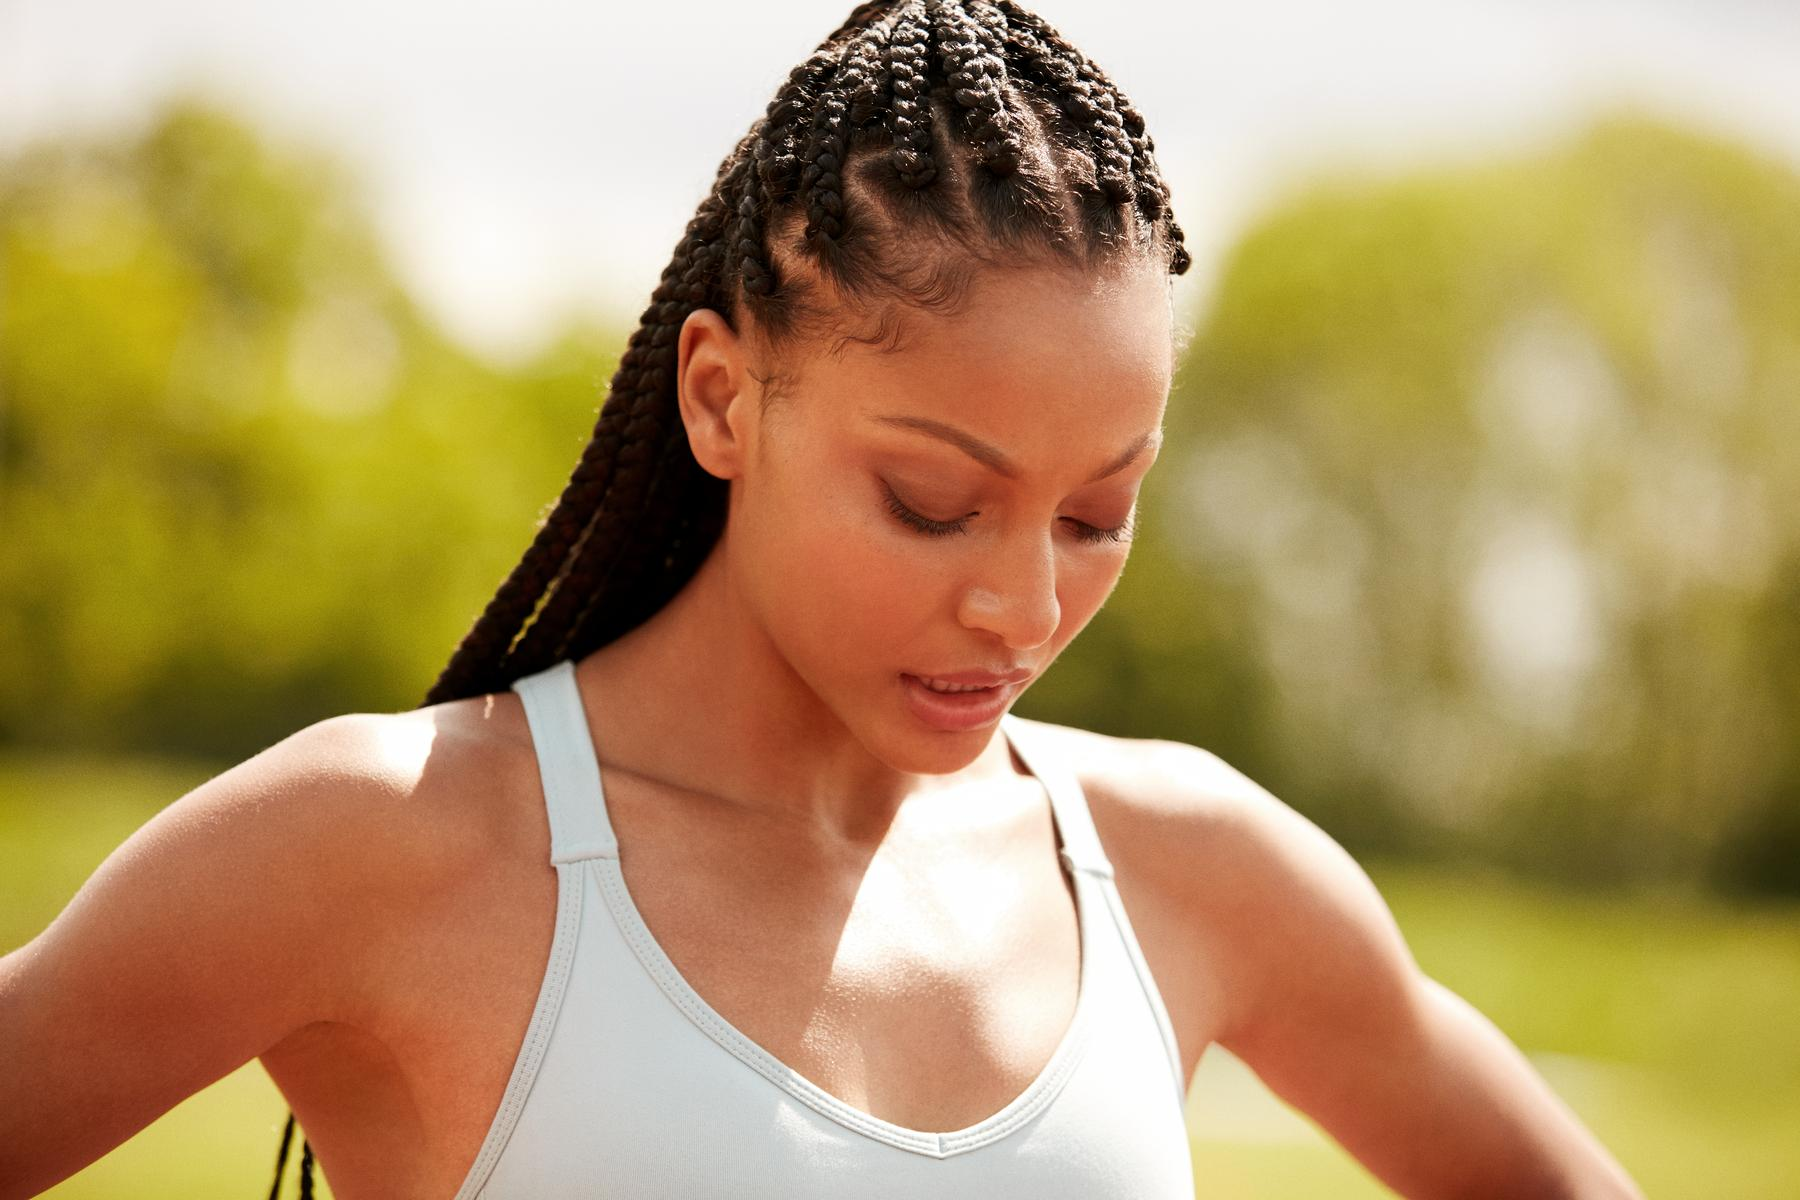 Looking To Re-Invigorate Your Routine? Here's How To Get Out Of That Rut